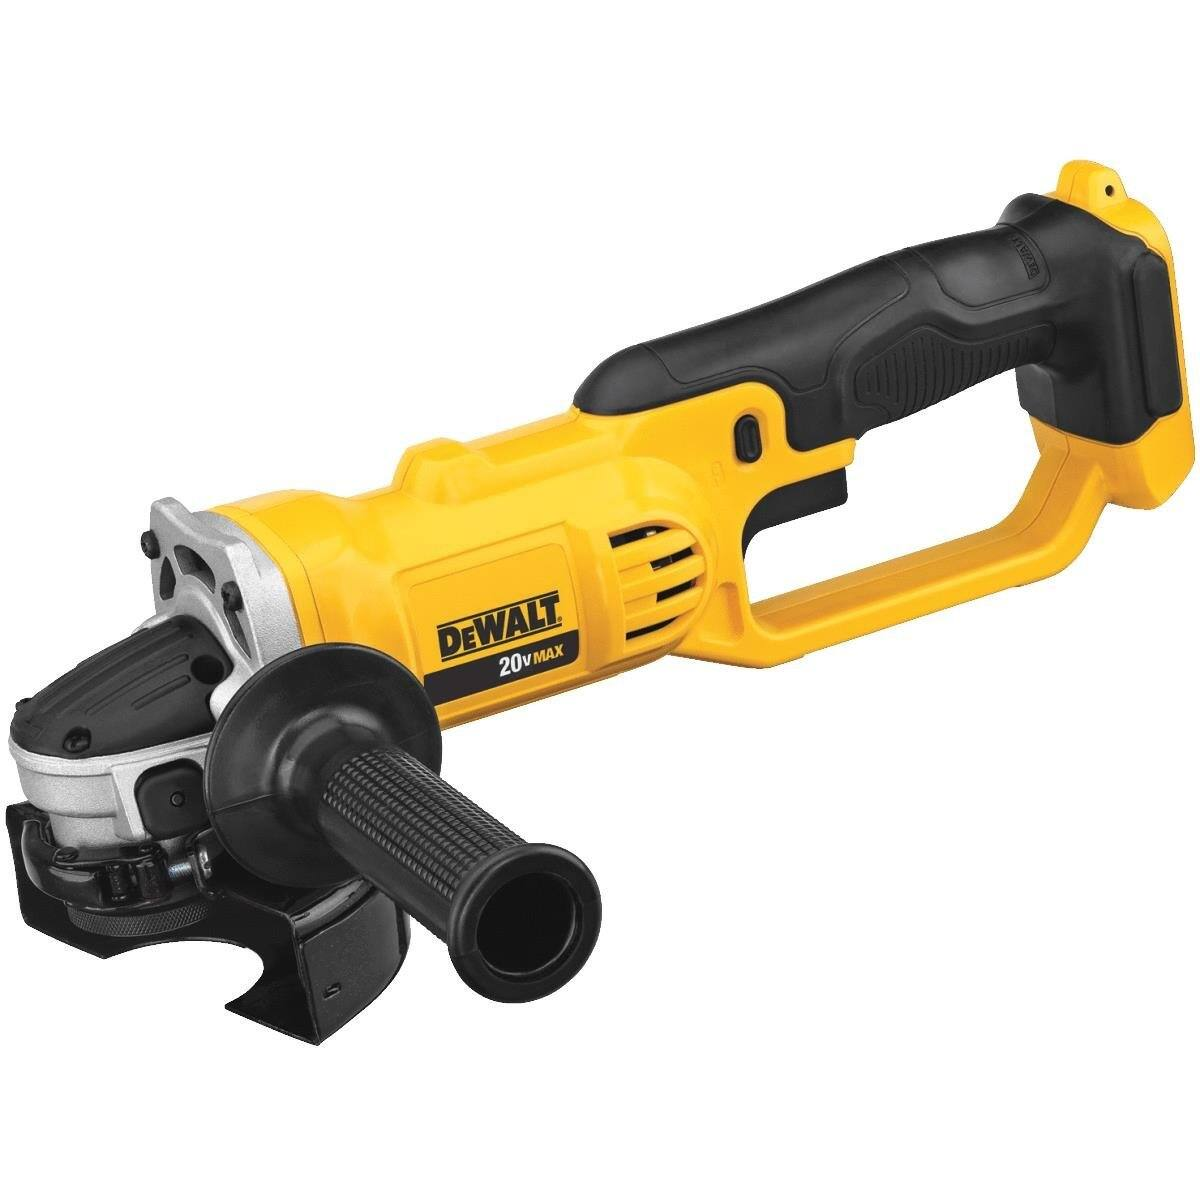 "Amazon: Dewalt DCG412B 20V MAX* Lithium Ion 4-1/2"" grinder (Tool Only) - $72.88 + Free Shipping"